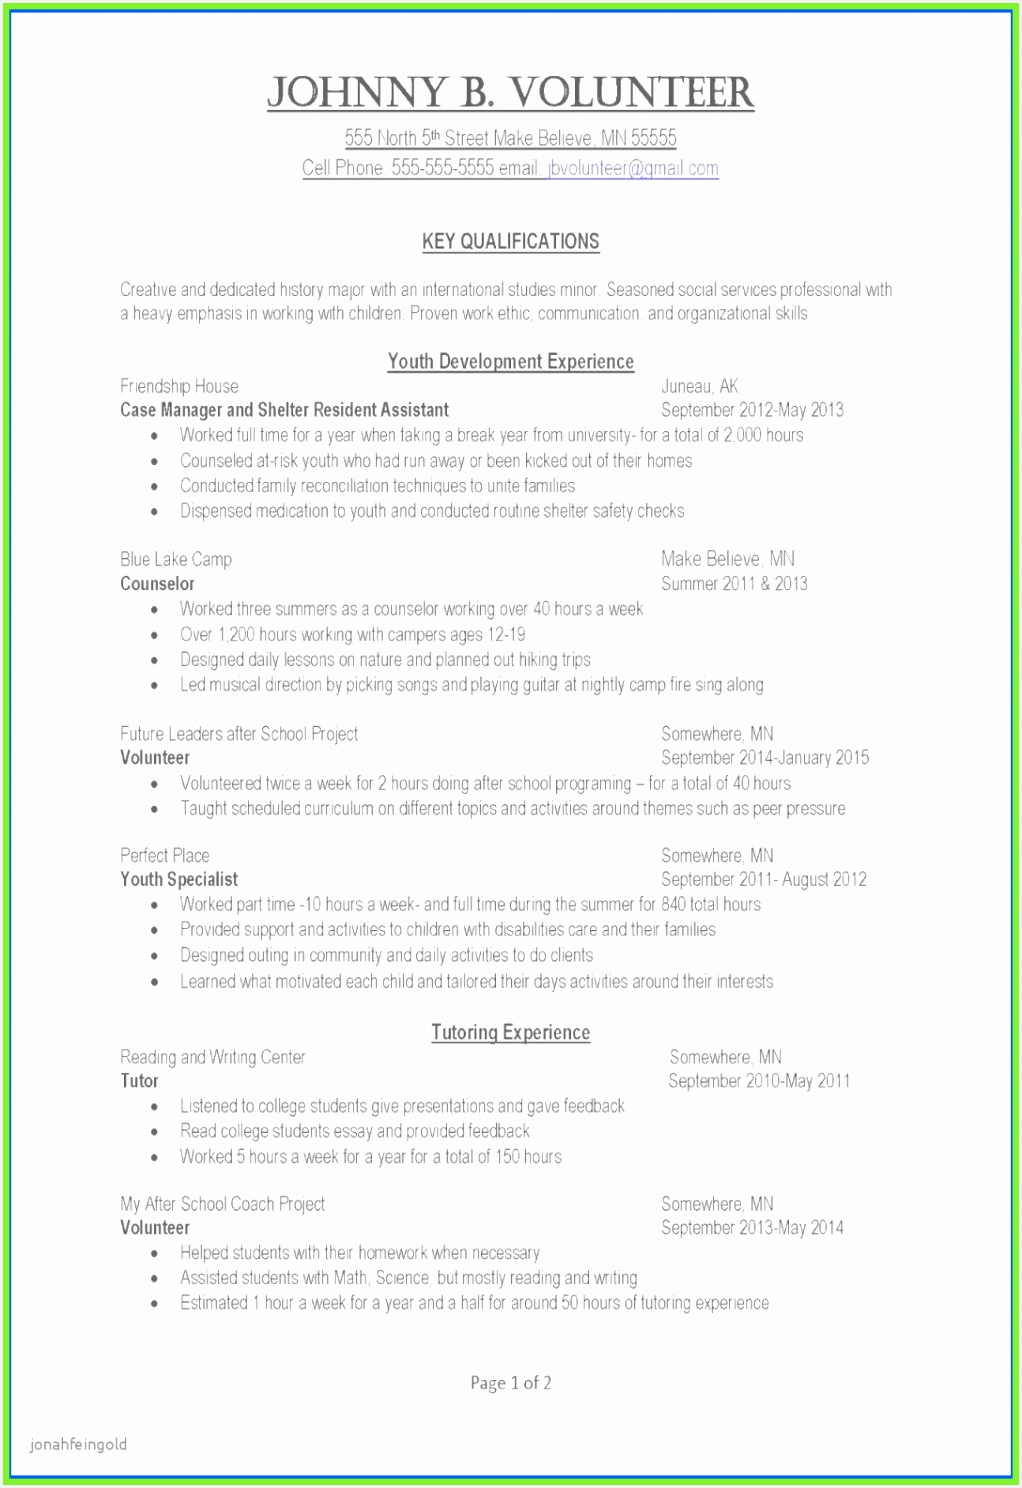 International social Worker Sample Resume Bnede Beautiful 16 Inspirational Student Cover Letter Template14881022